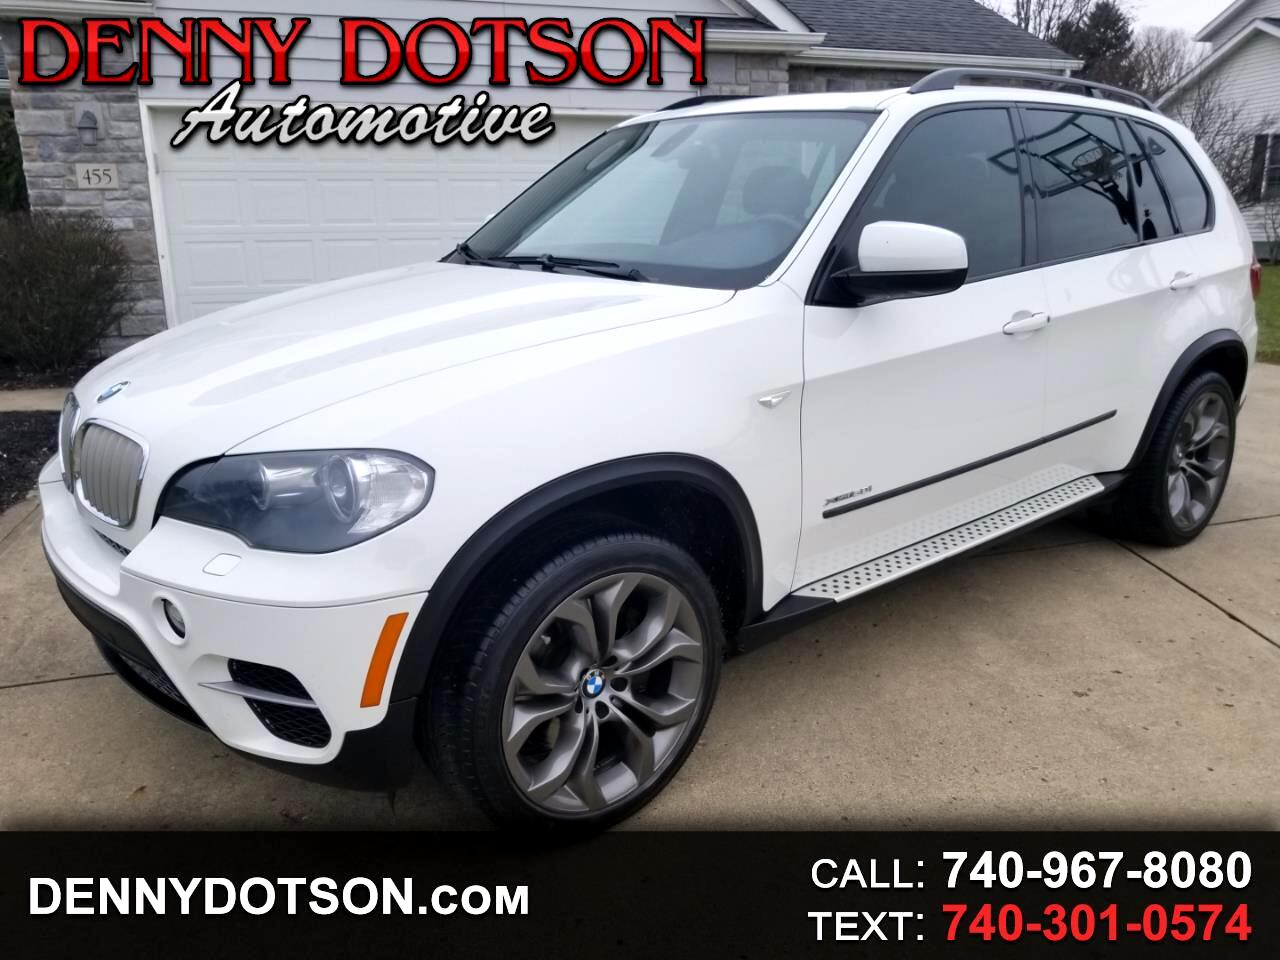 2011 BMW X5 AWD 4dr xDrive50i